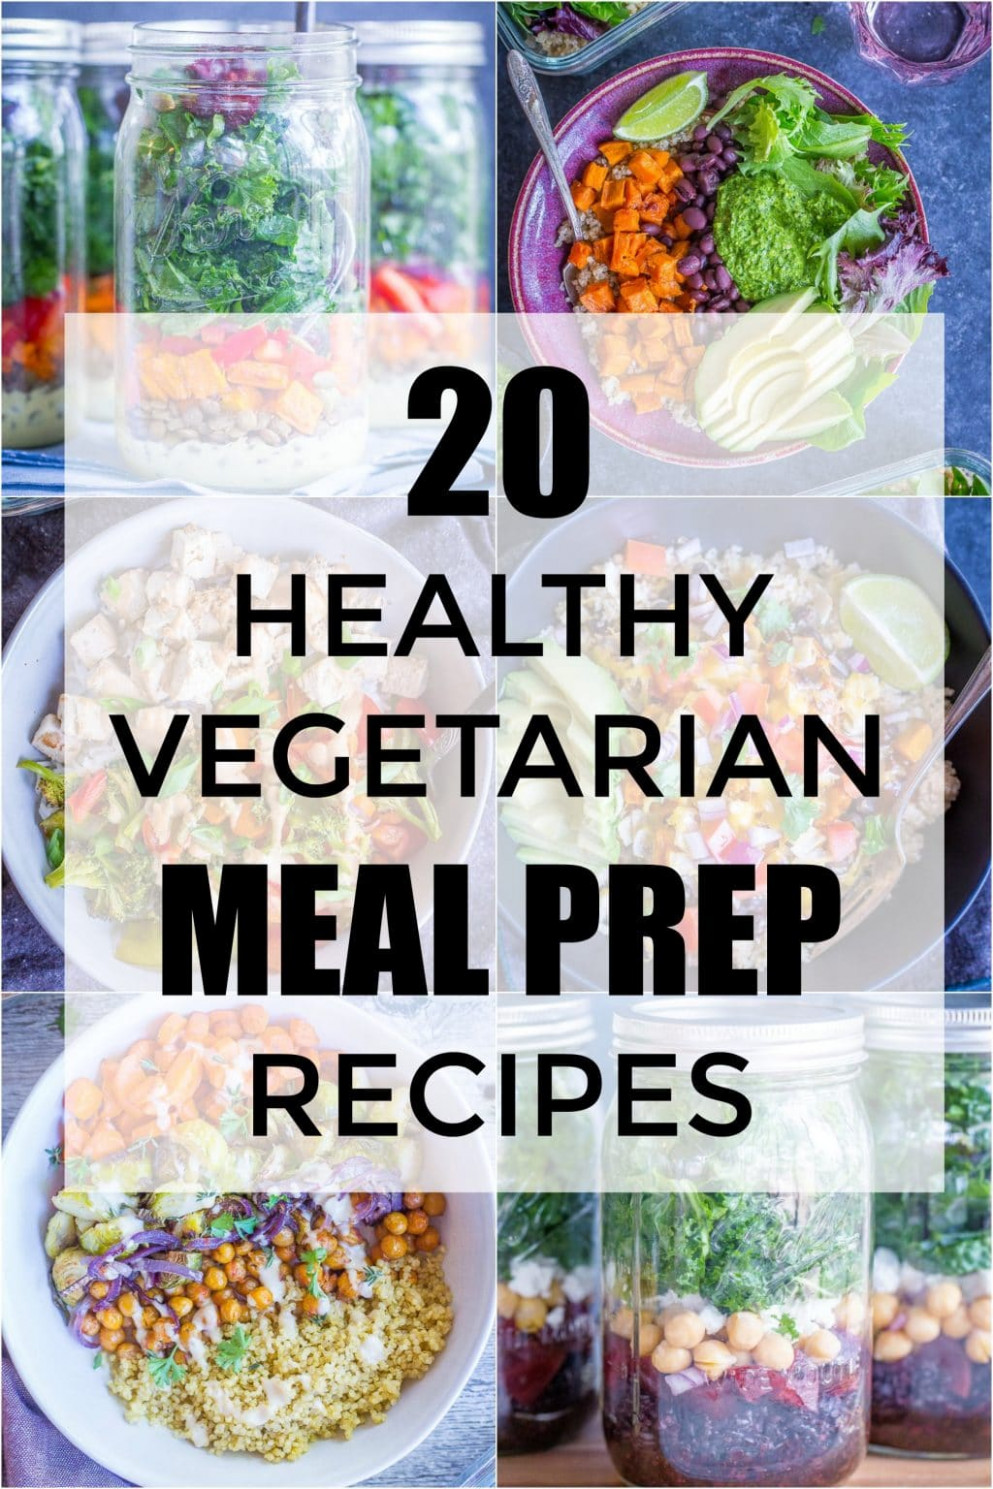 13 Healthy Vegetarian Meal Prep Recipes - She Likes Food - recipes vegetarian healthy